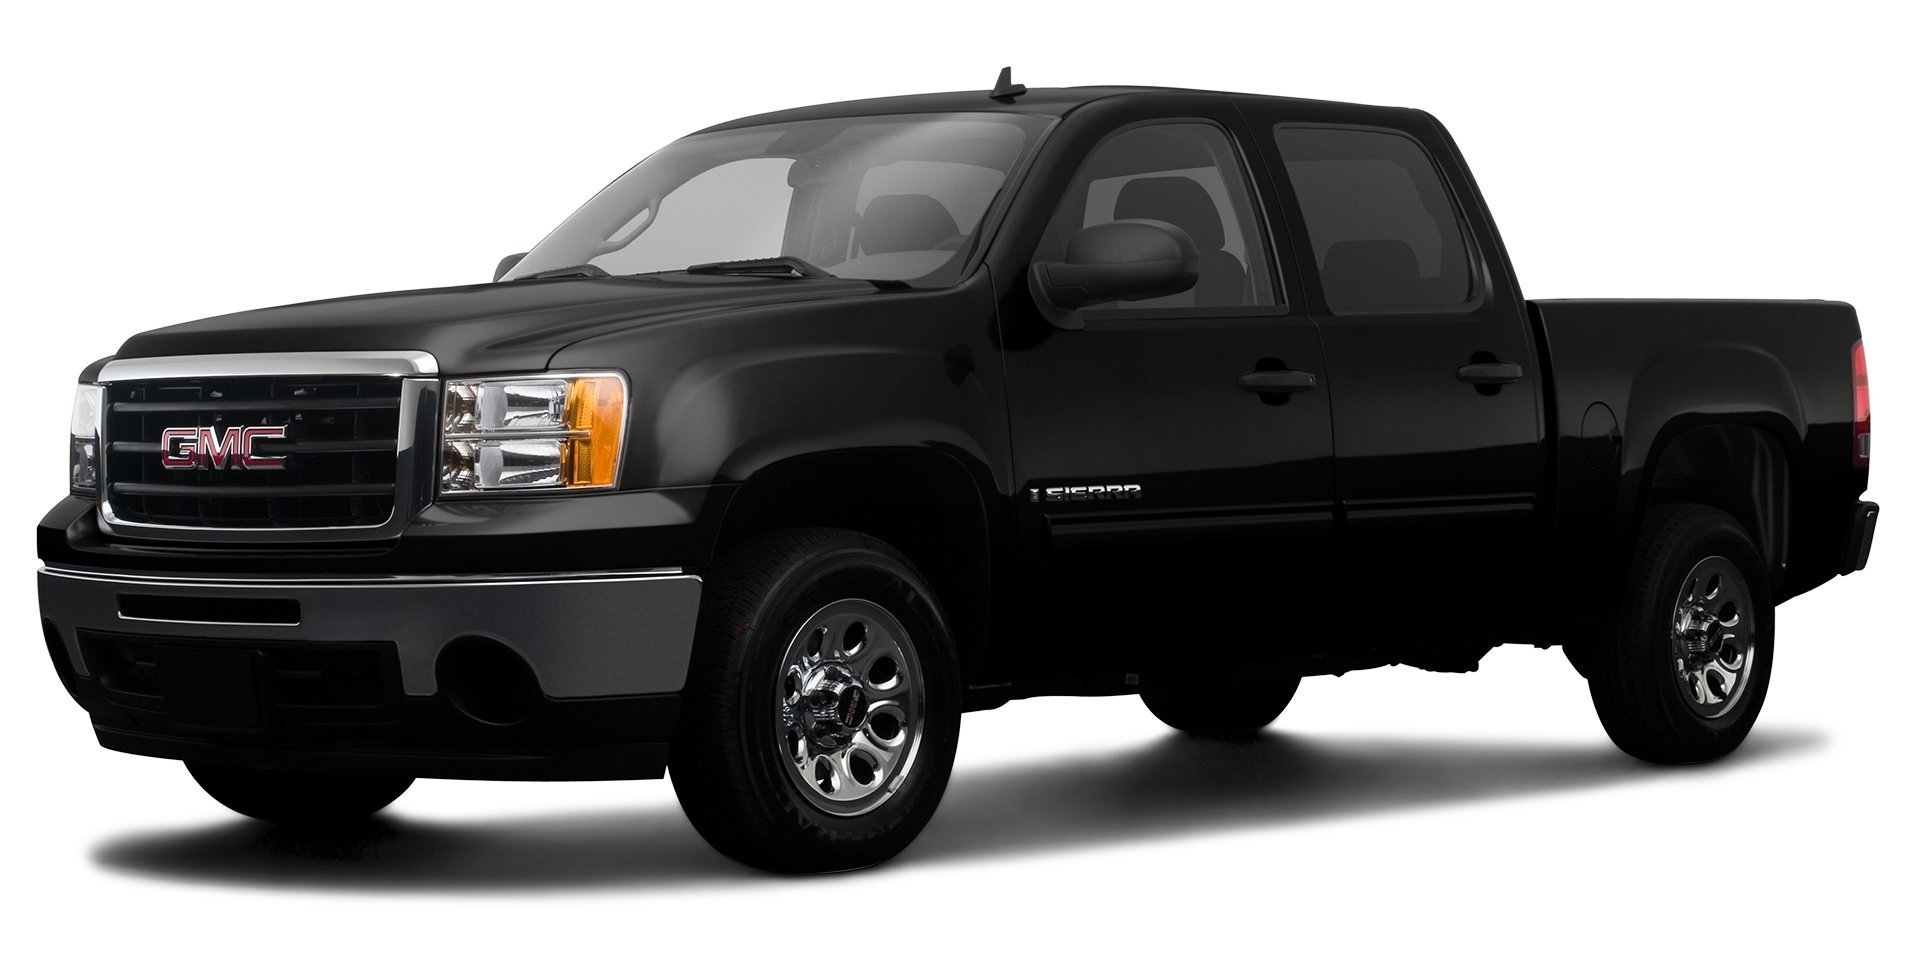 2009 ford explorer sport trac reviews images and specs vehicles. Black Bedroom Furniture Sets. Home Design Ideas